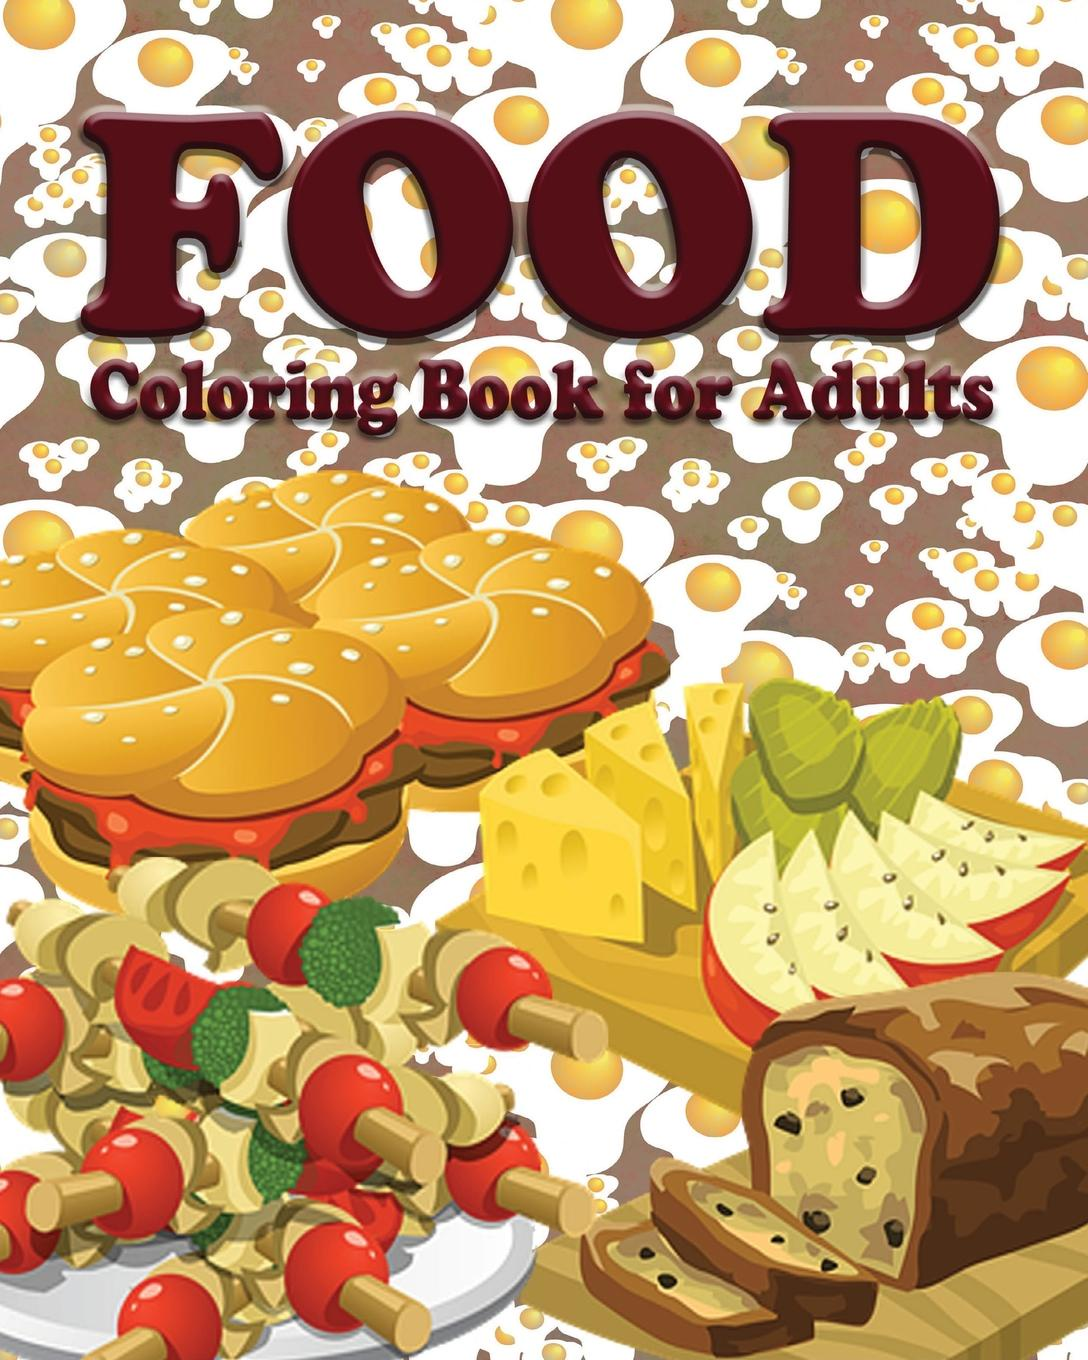 Jason Potash Food Coloring Book for Adults